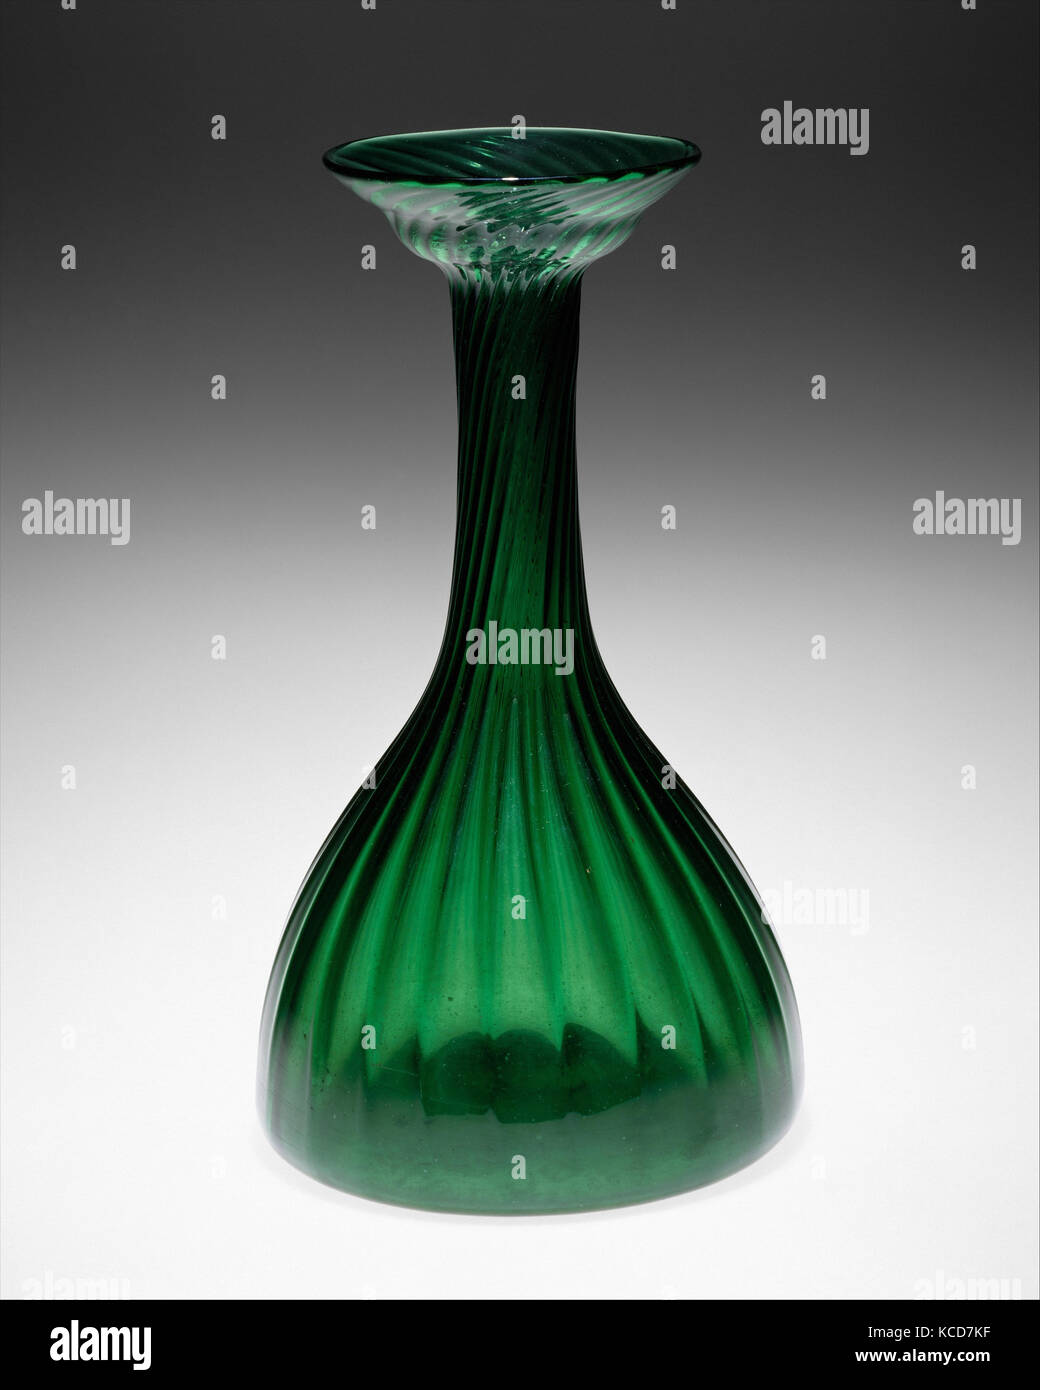 Clutha vase, ca. 1890, Scottish, Glasgow, Glass, Height: 11 1/4 in. (28.6 cm), Glass, Reacting against the fashion - Stock Image